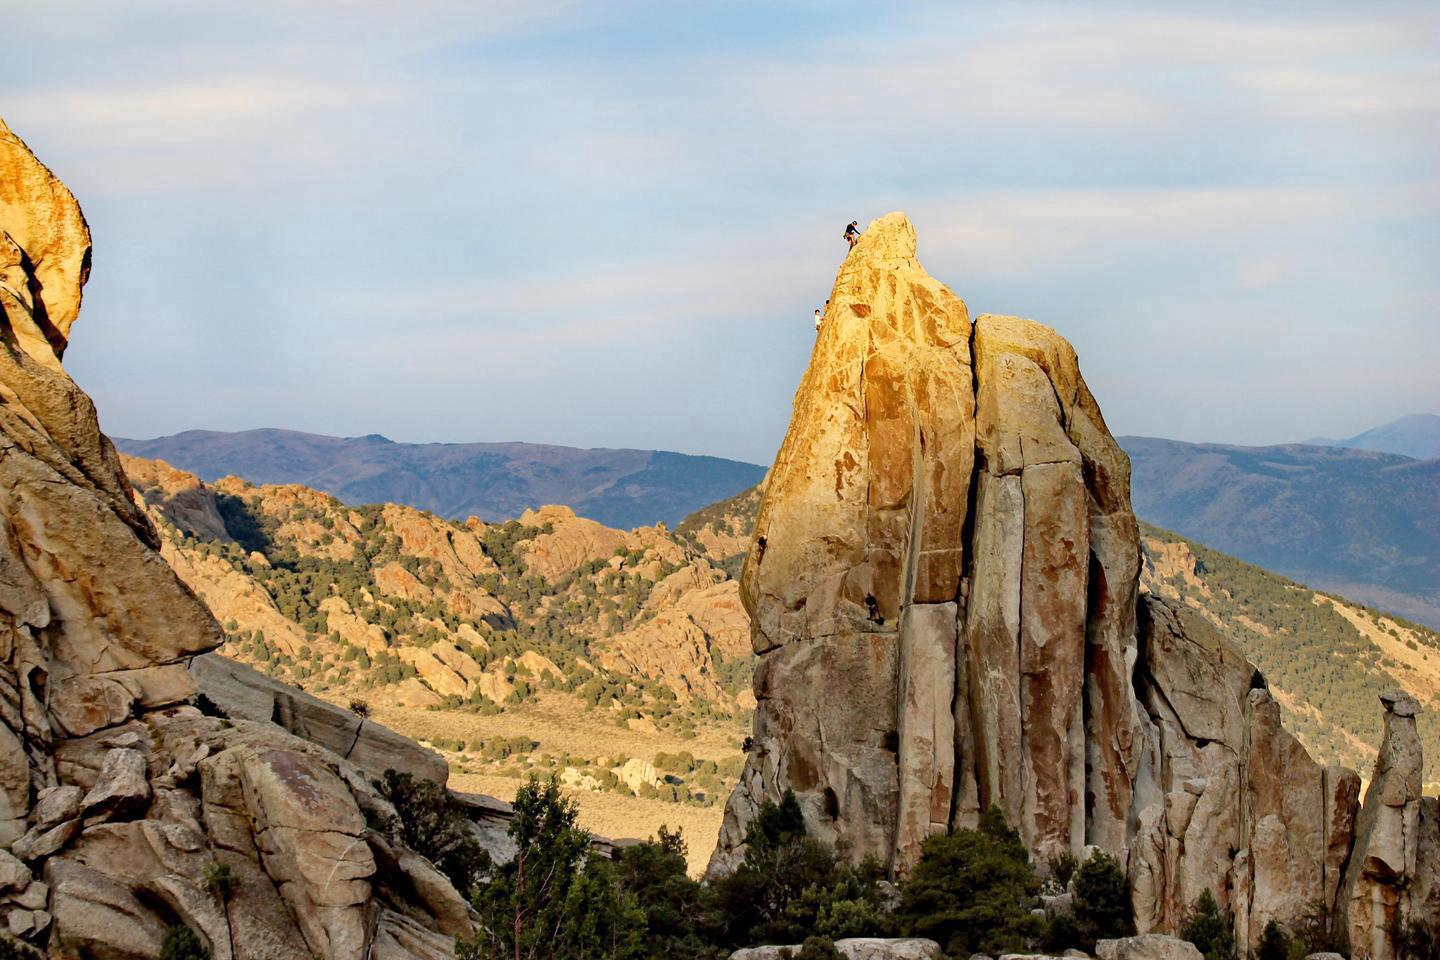 Climber on Morning Glory SpireOver half of the 100,000 annual visitors to City of Rocks come to experience climbing